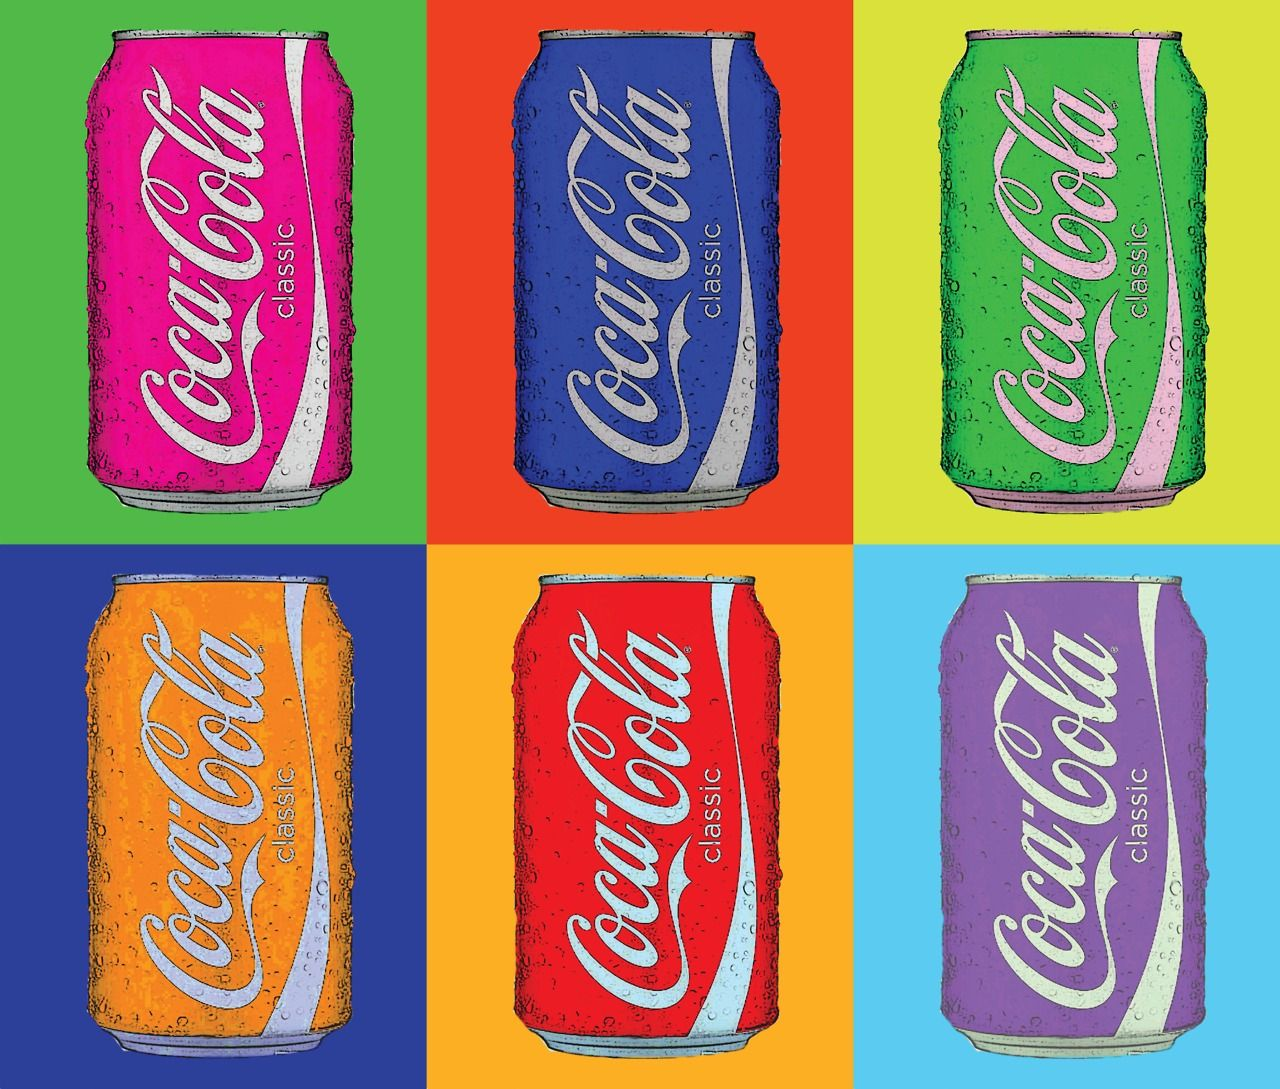 Coca-Cola 3 bottles | Andy Warhol | Pop Art | 1962 | Pop Art ...